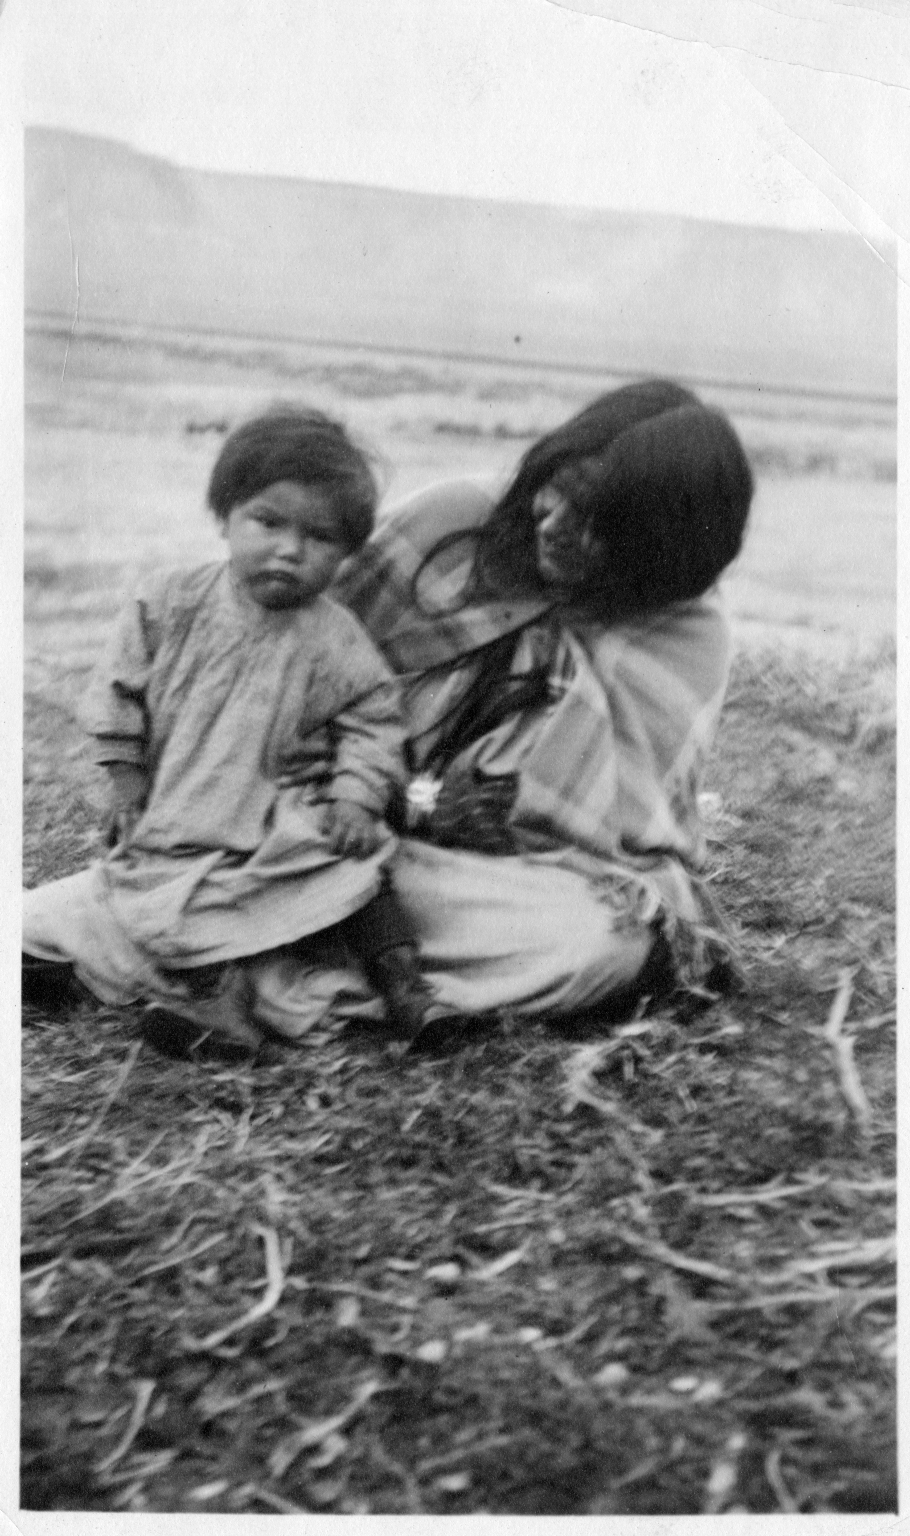 Portrait of a Ute woman with a child